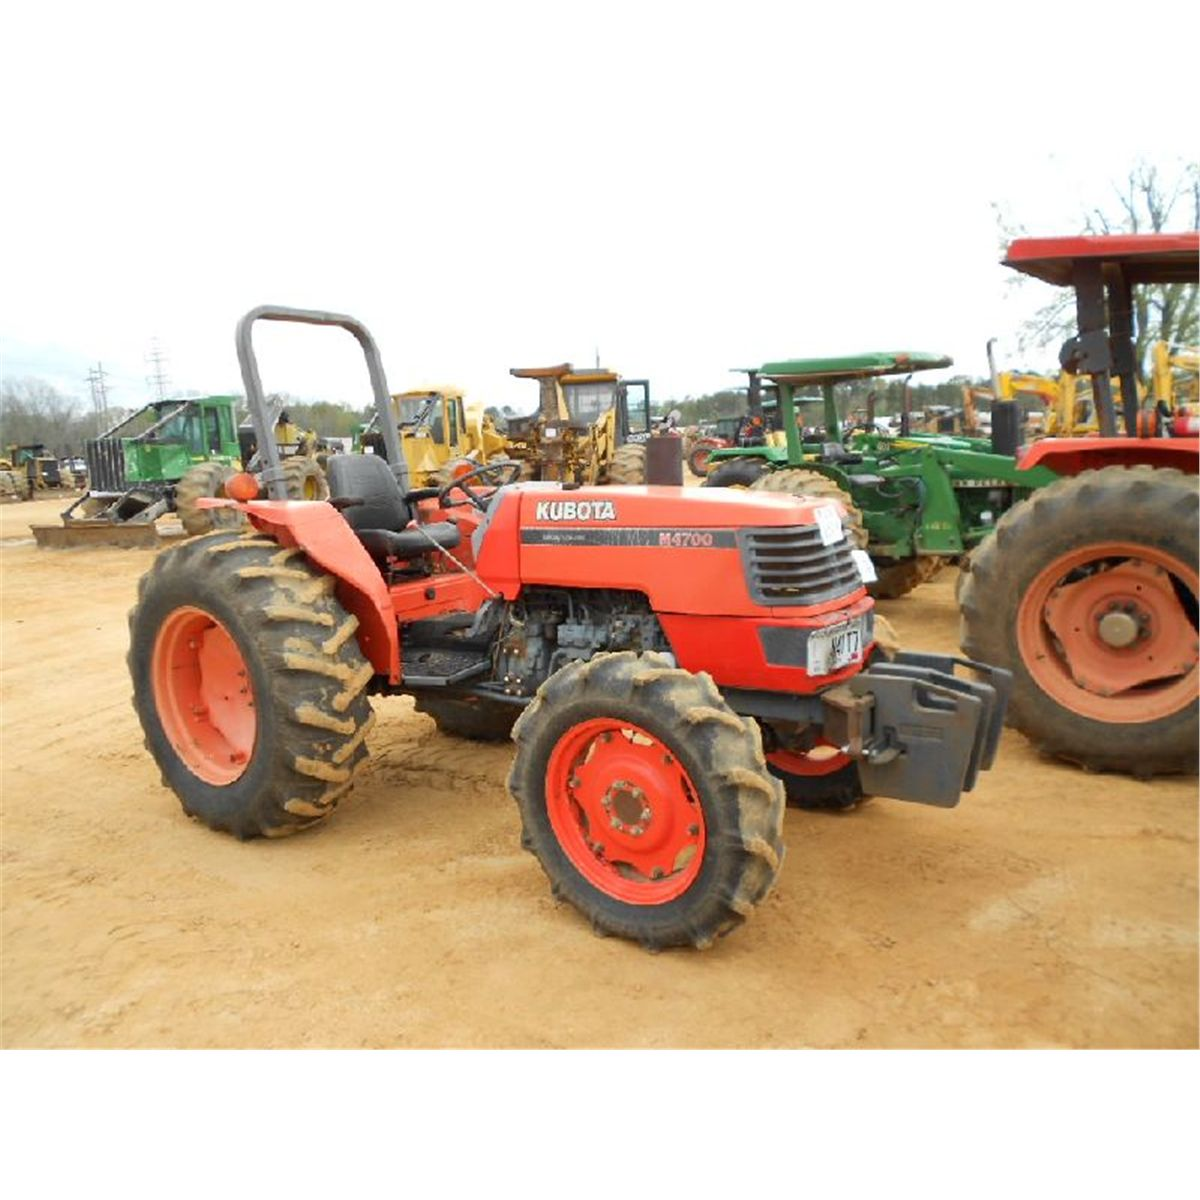 kubota m4700 4x4 farm tractor j m wood auction company inc. Black Bedroom Furniture Sets. Home Design Ideas